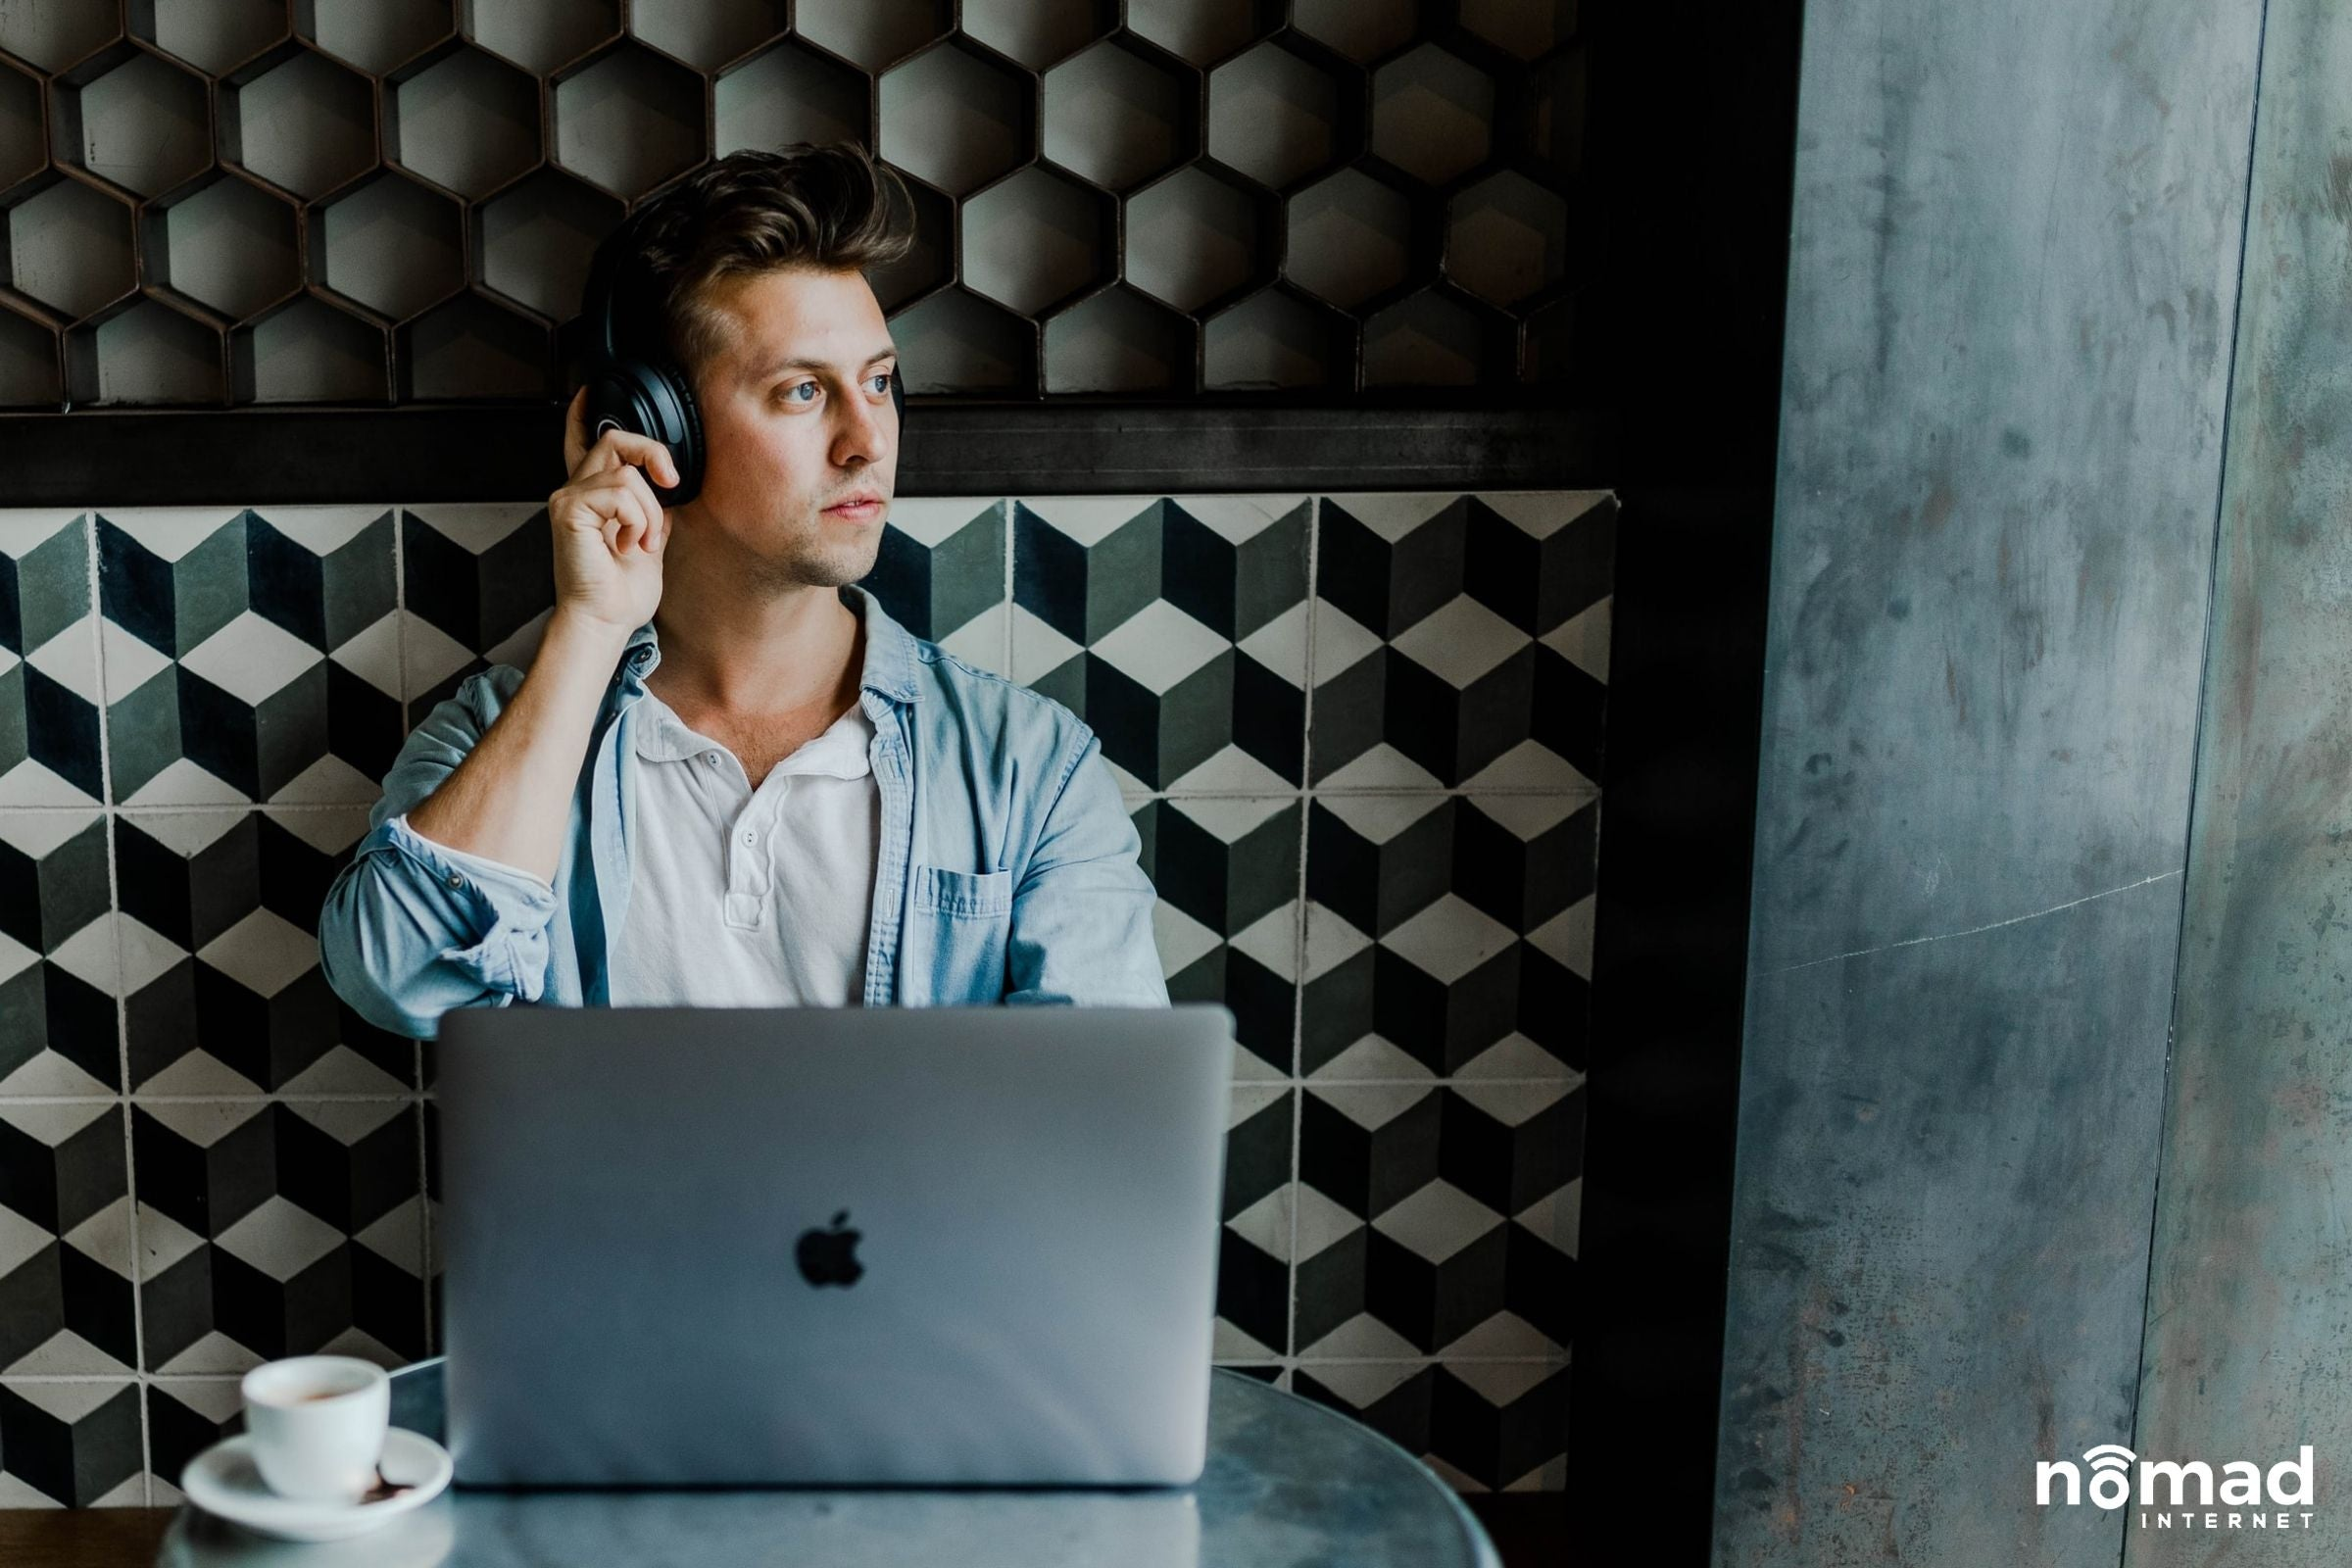 A Day in the Life of a Remote Worker   Nomad Internet